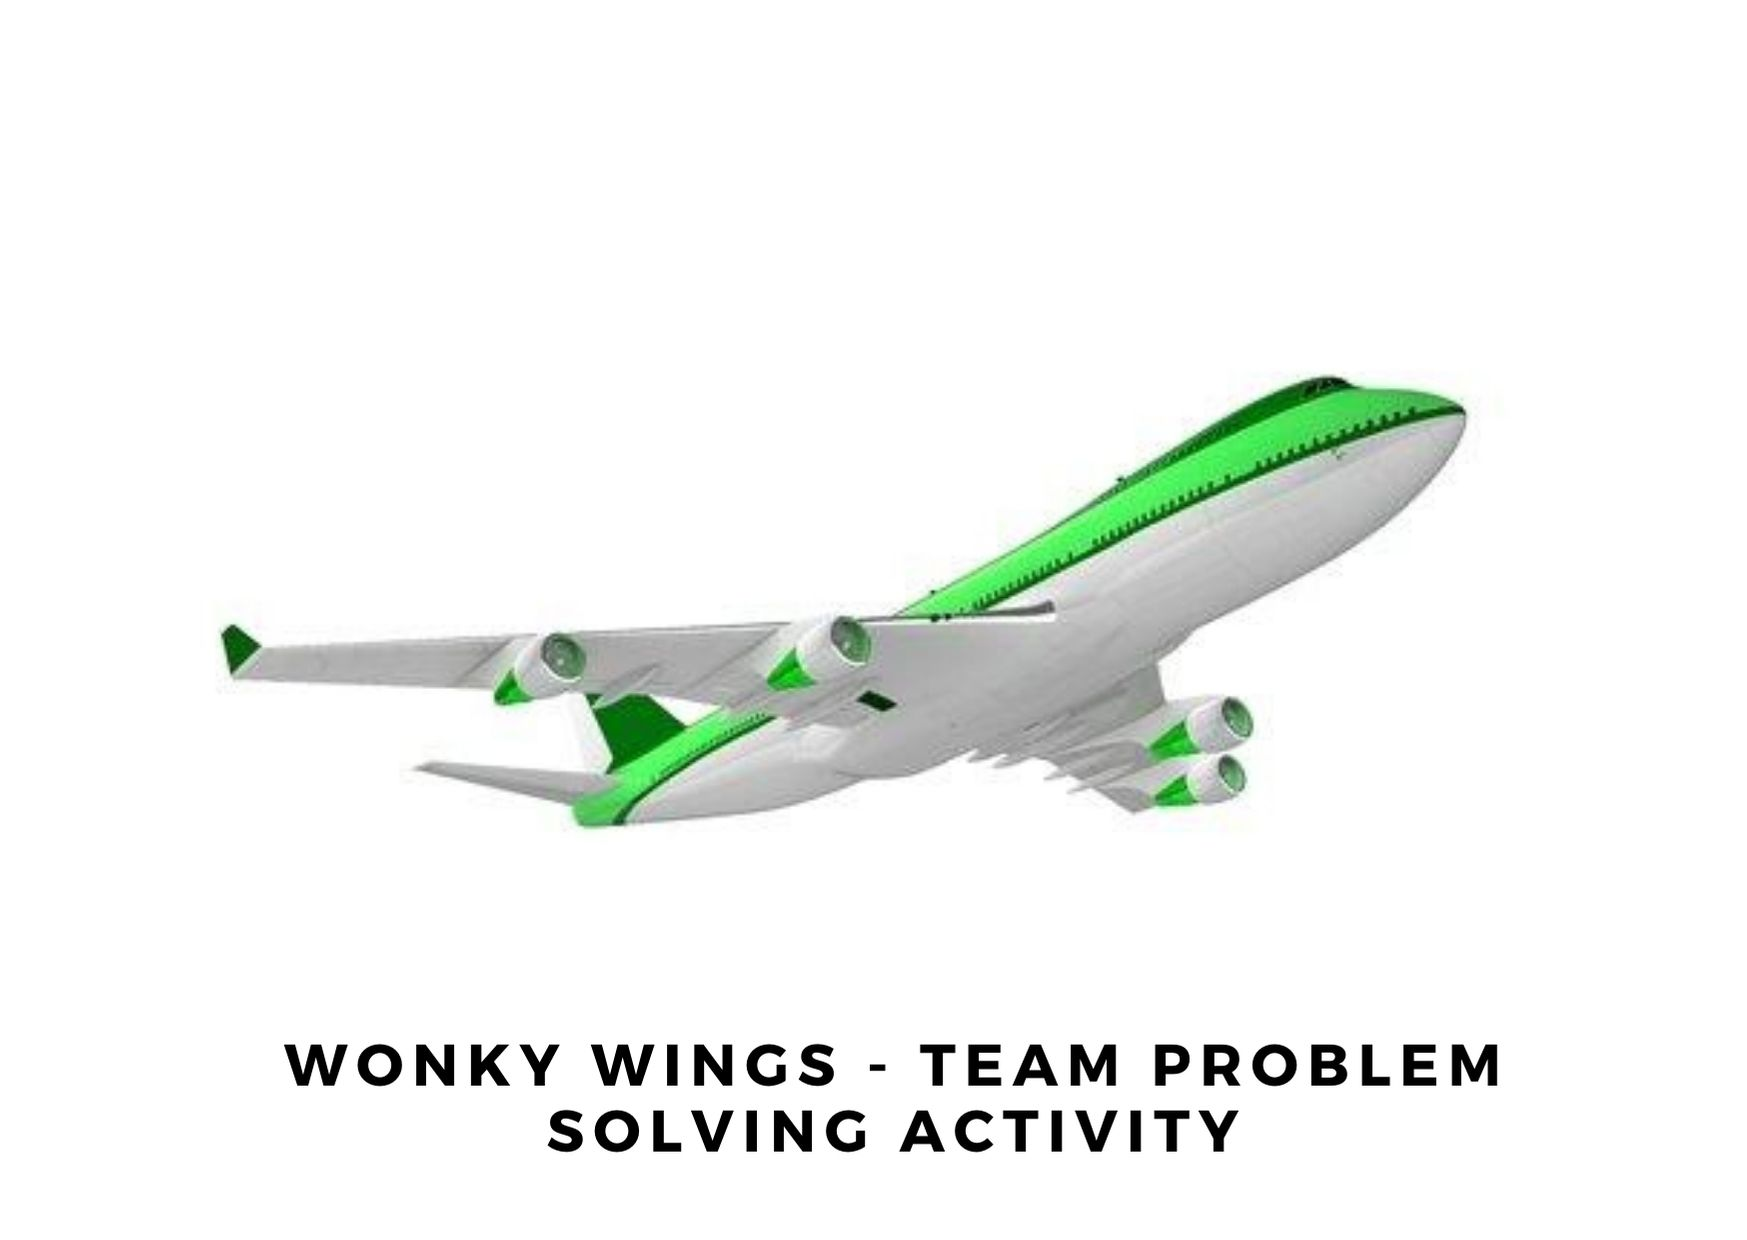 Wonky Wings Team Problem Solving Activity